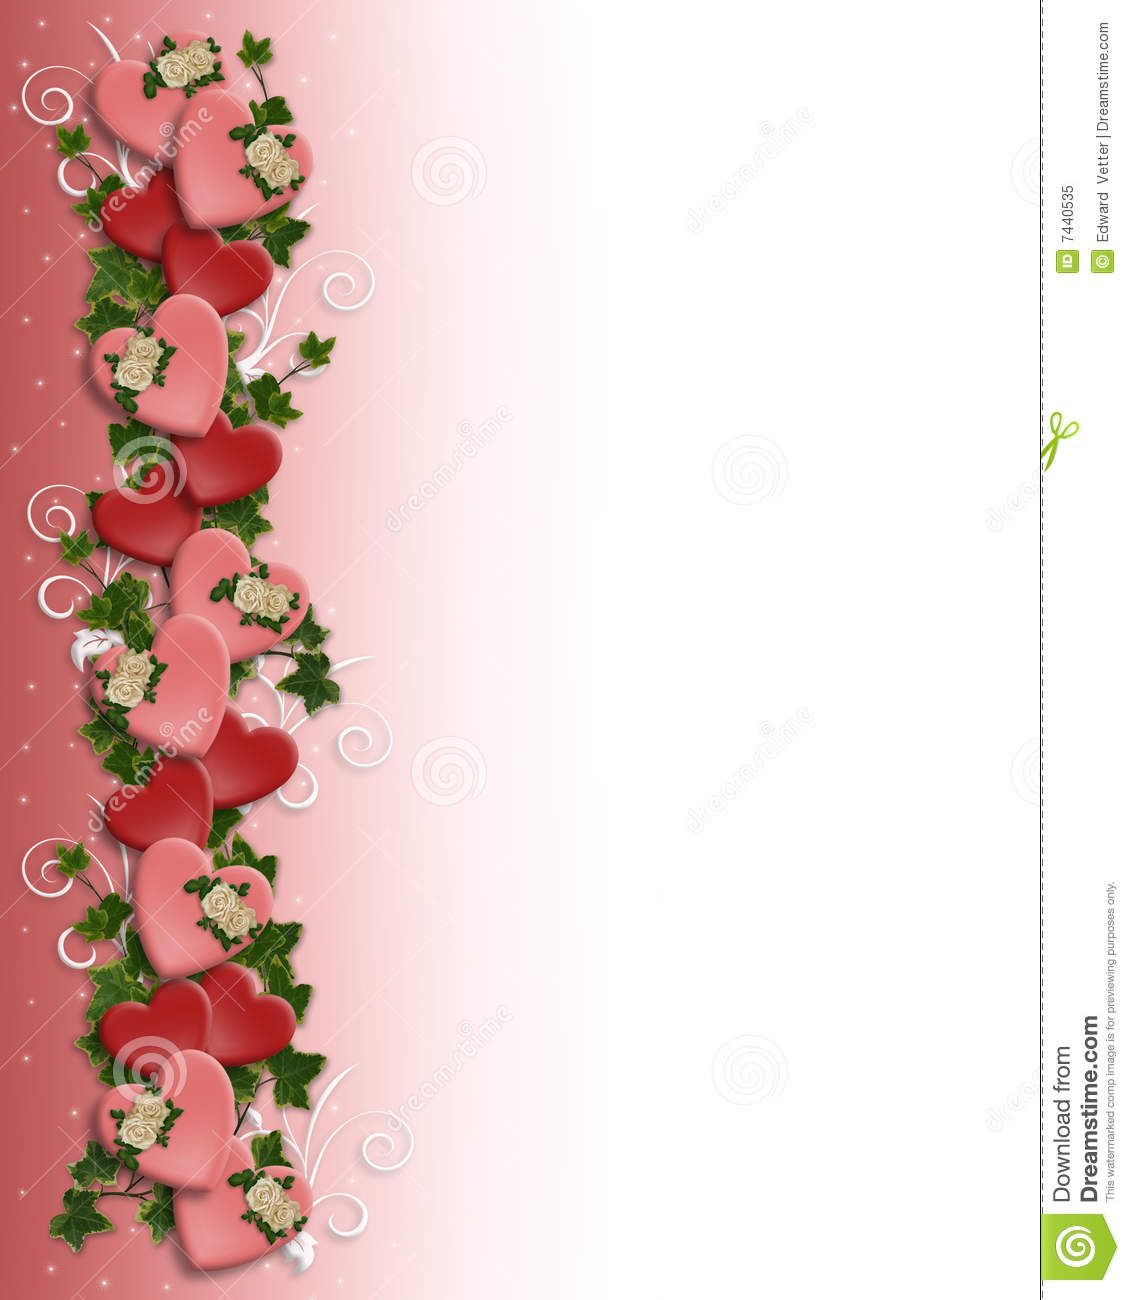 Valentine Border Hearts Flowers Stock Illustration